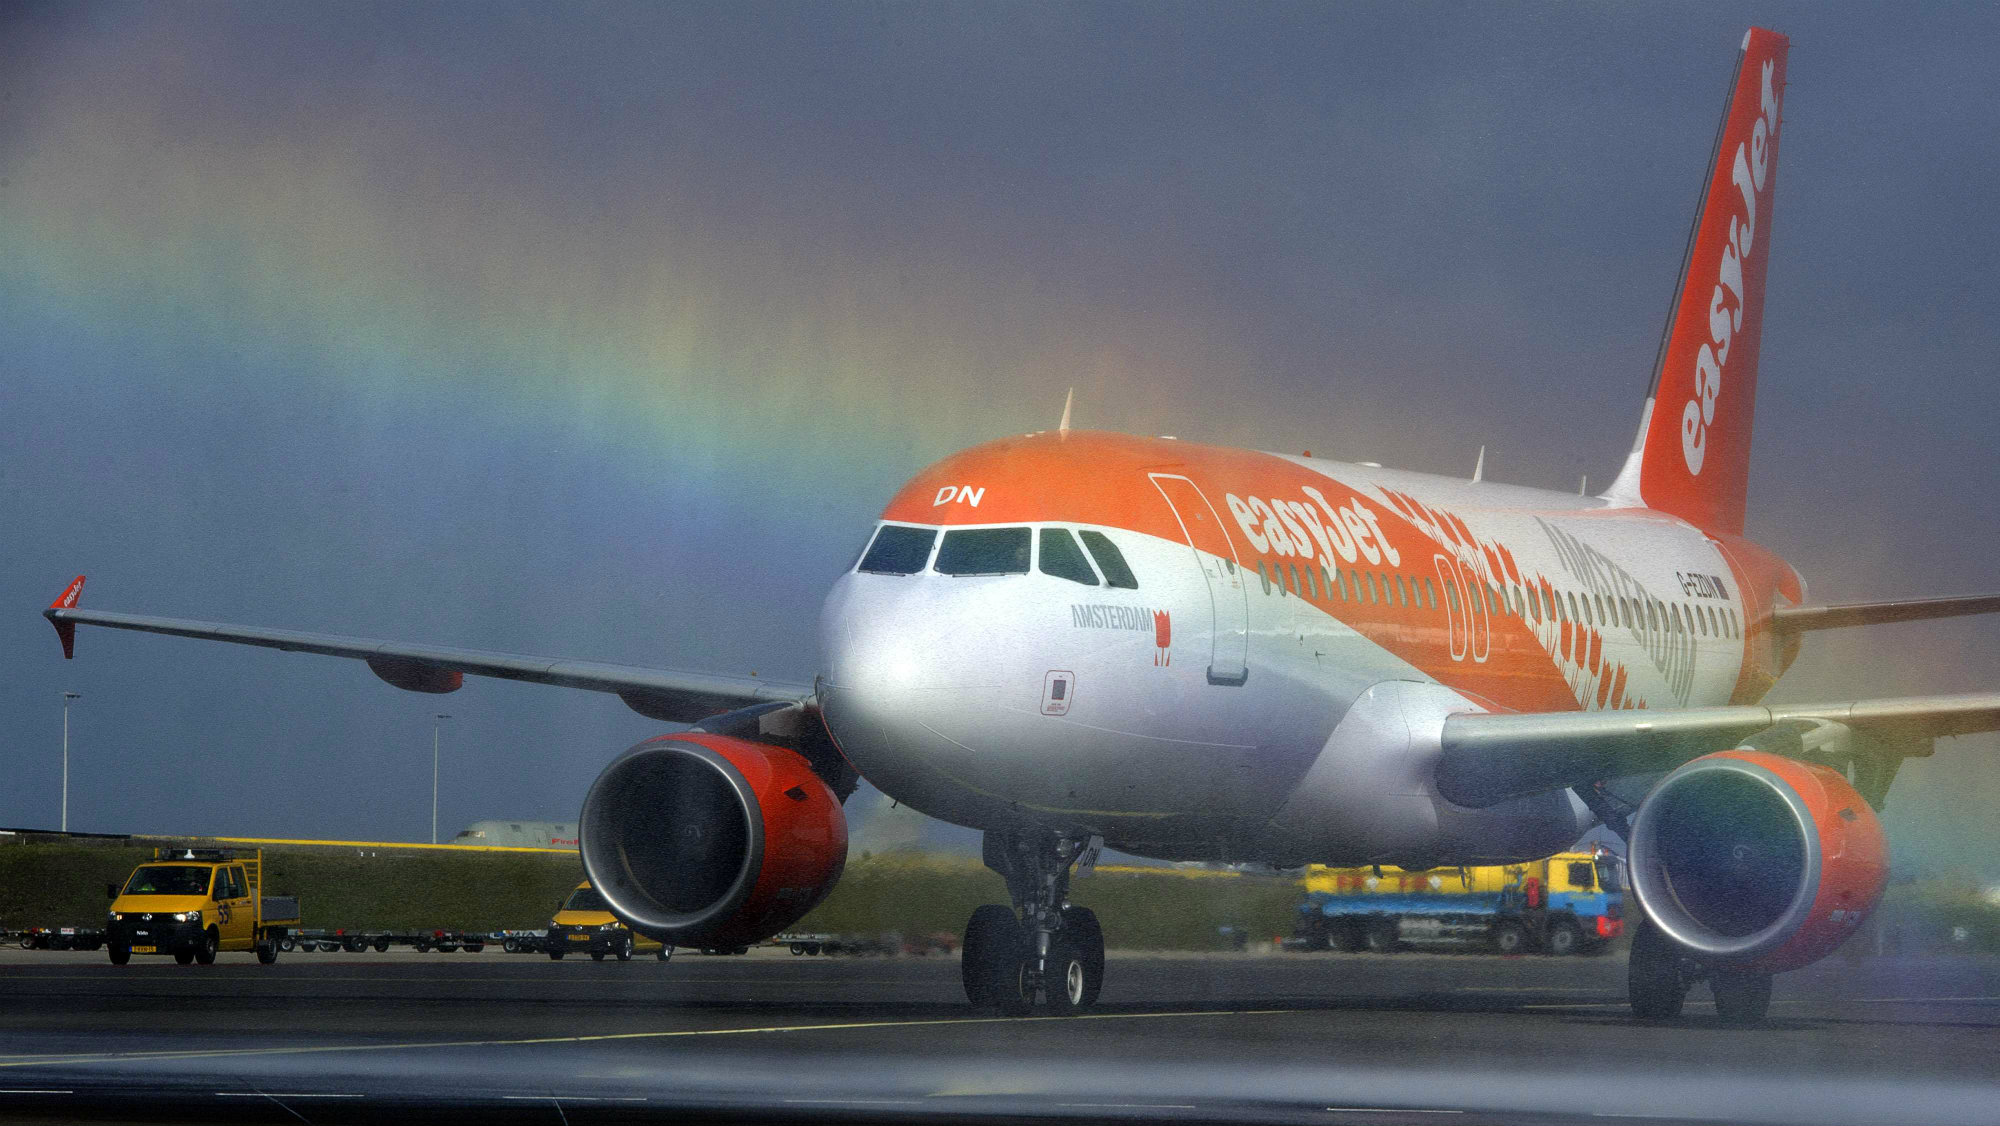 An easyJet aircraft especially decorated in Dutch colors and sesign is presented at Schiphol Airport, the Netherlands.